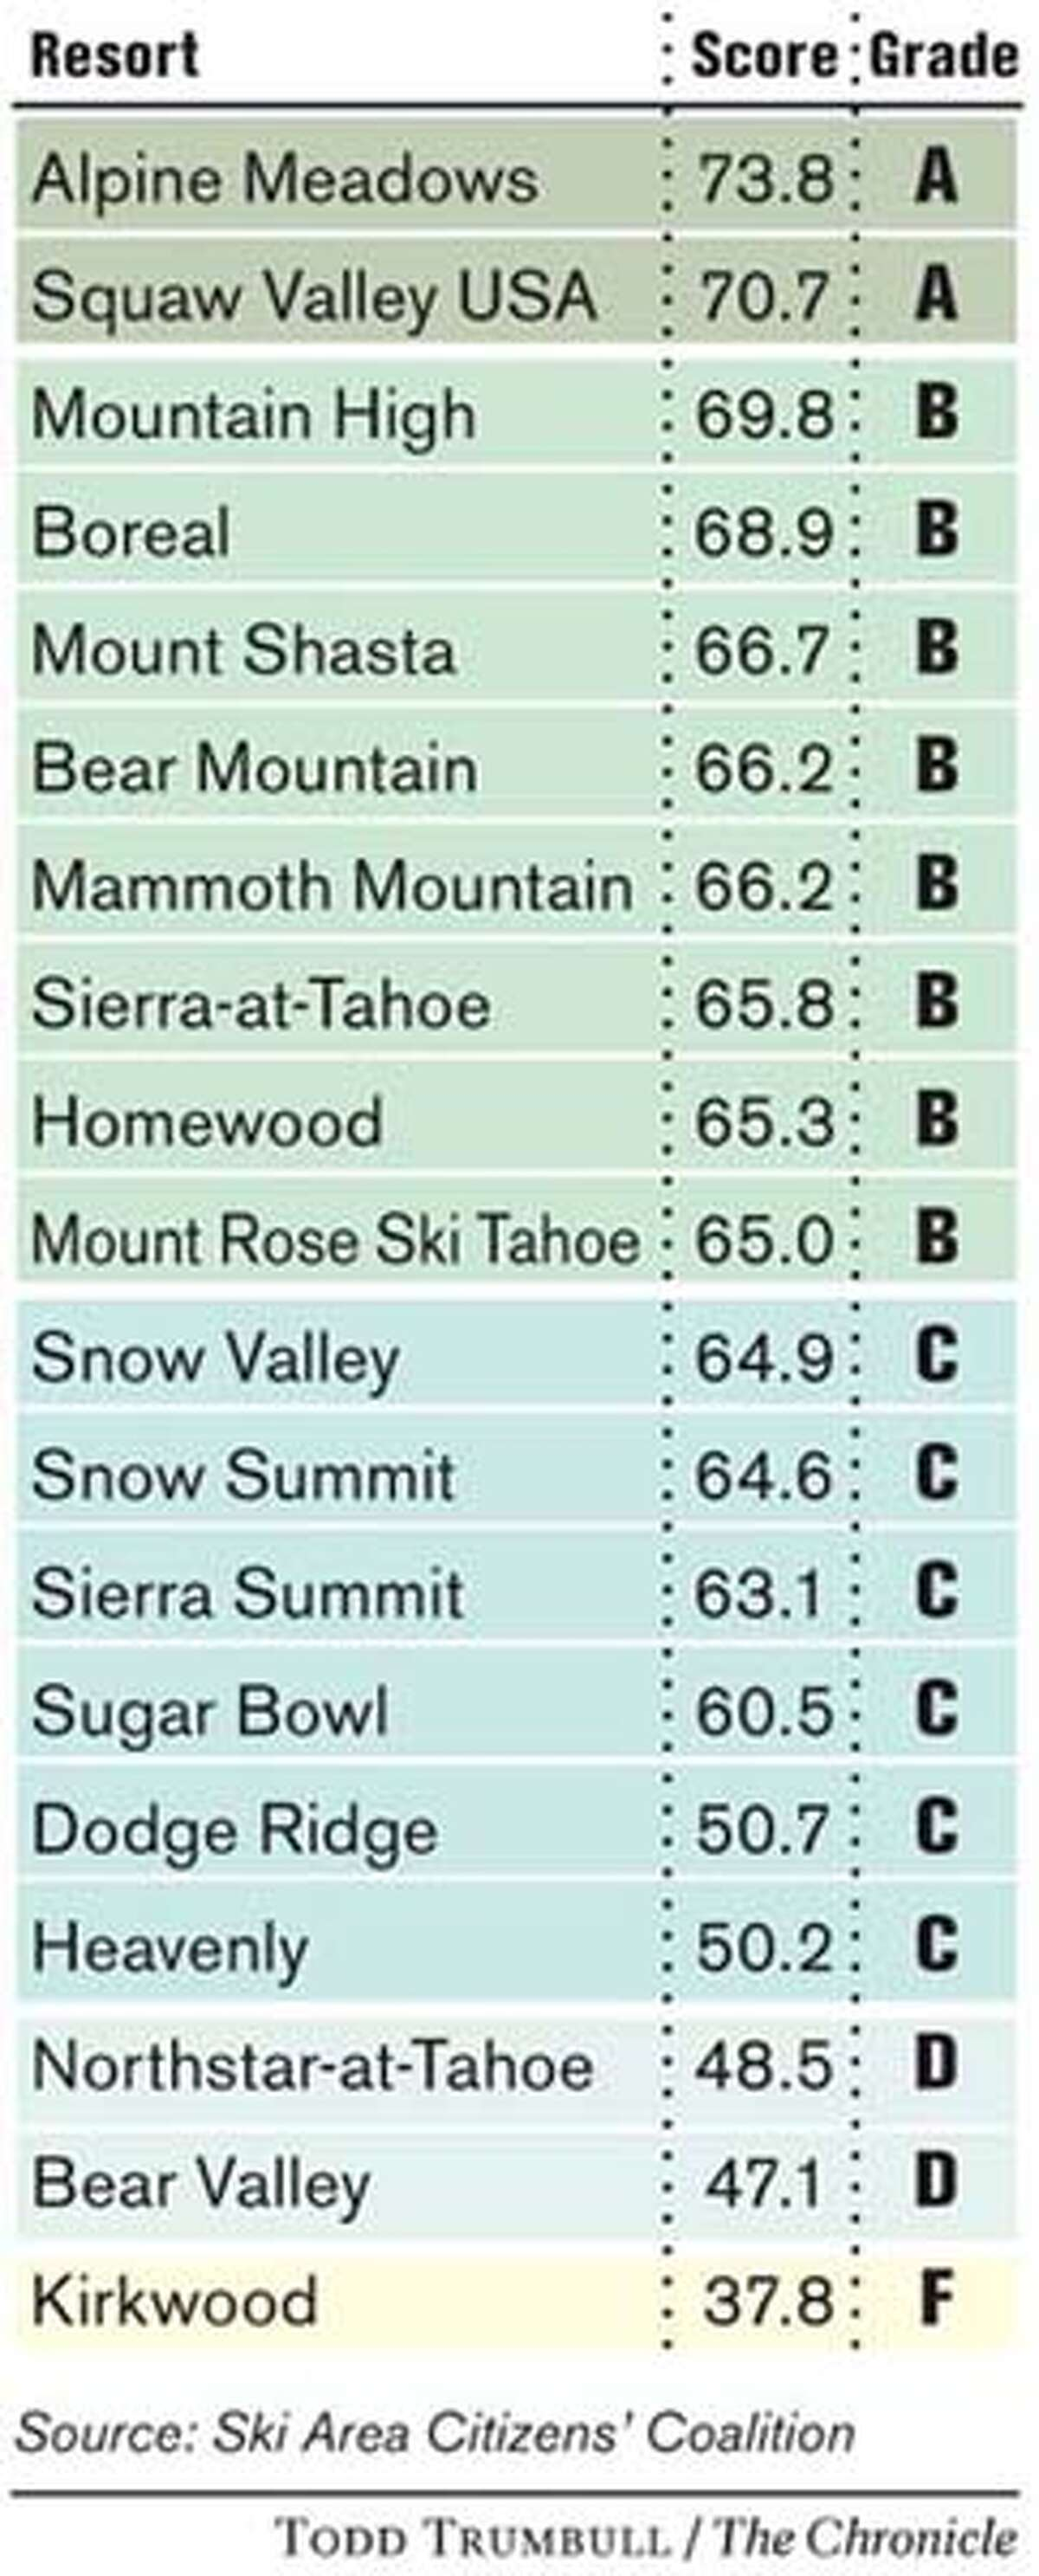 An annual report by the Ski Area Citizens' Coalition grades resorts based on environmental criteria such as recycling, use of green energy and protection of old-growth forests and water resources. Chronicle graphic by Todd Trumbull